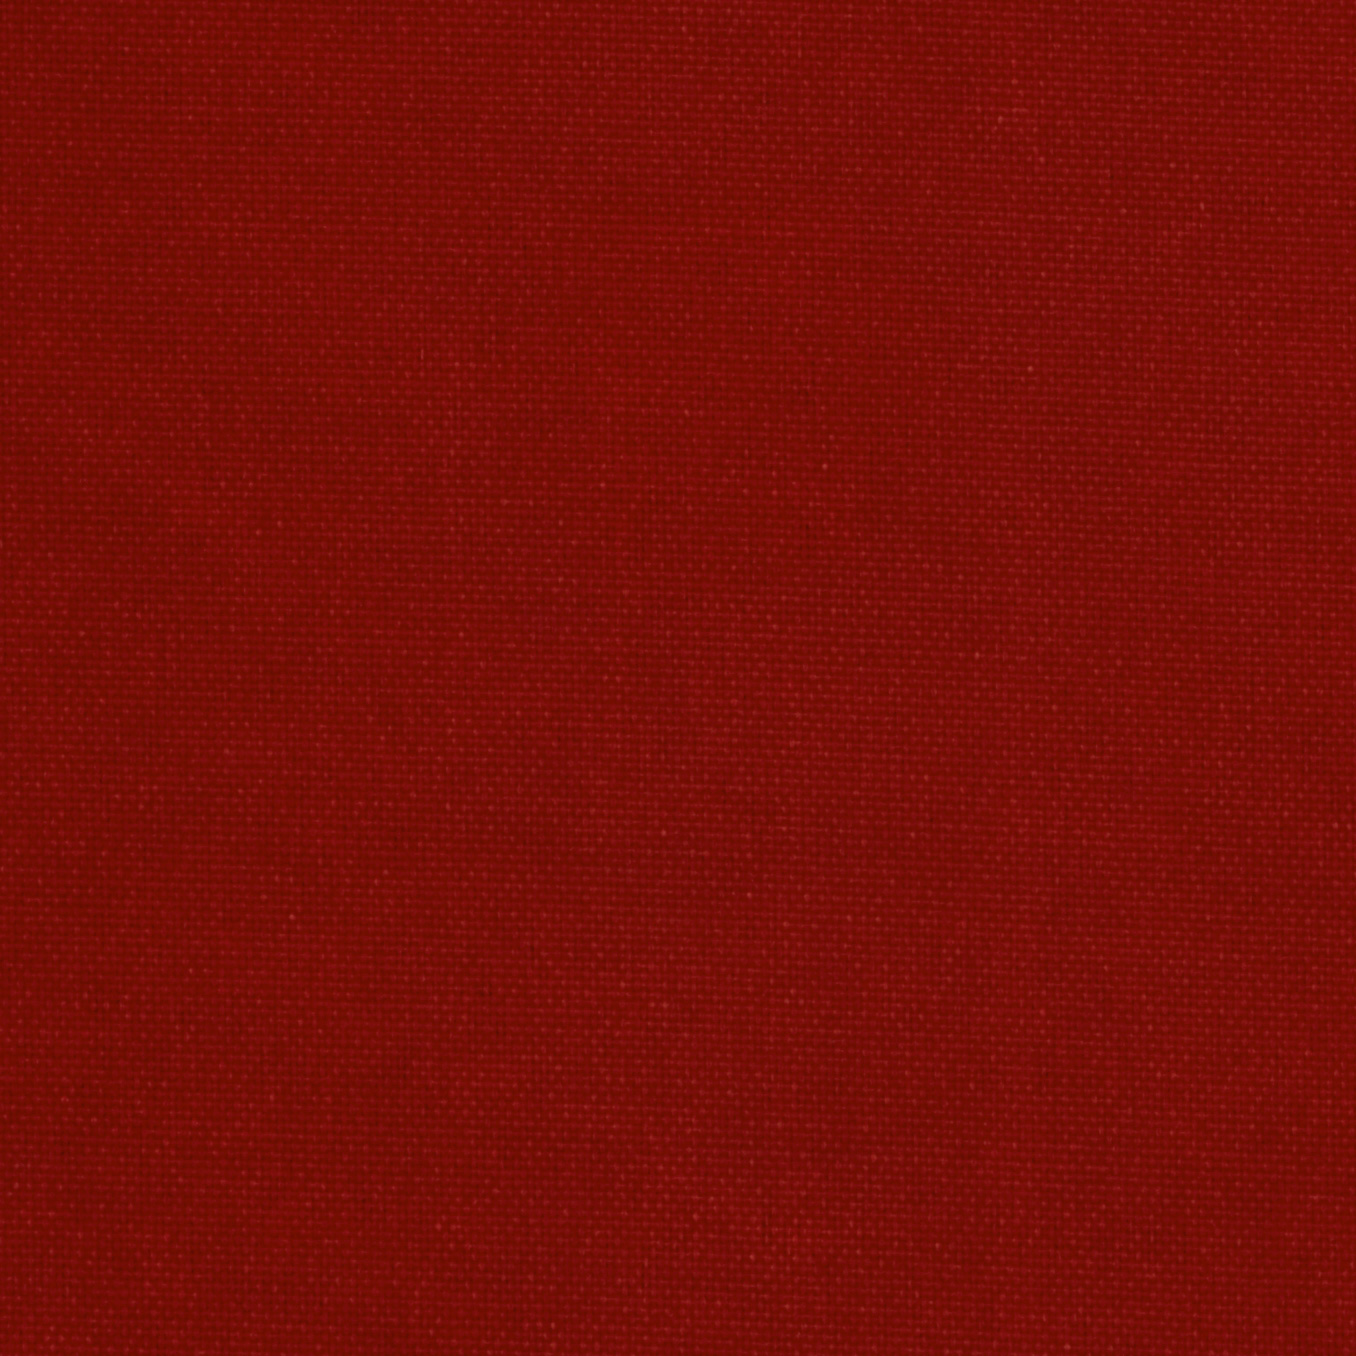 Premier Prints Indoor/Outdoor Dyed Solid American Red Fabric